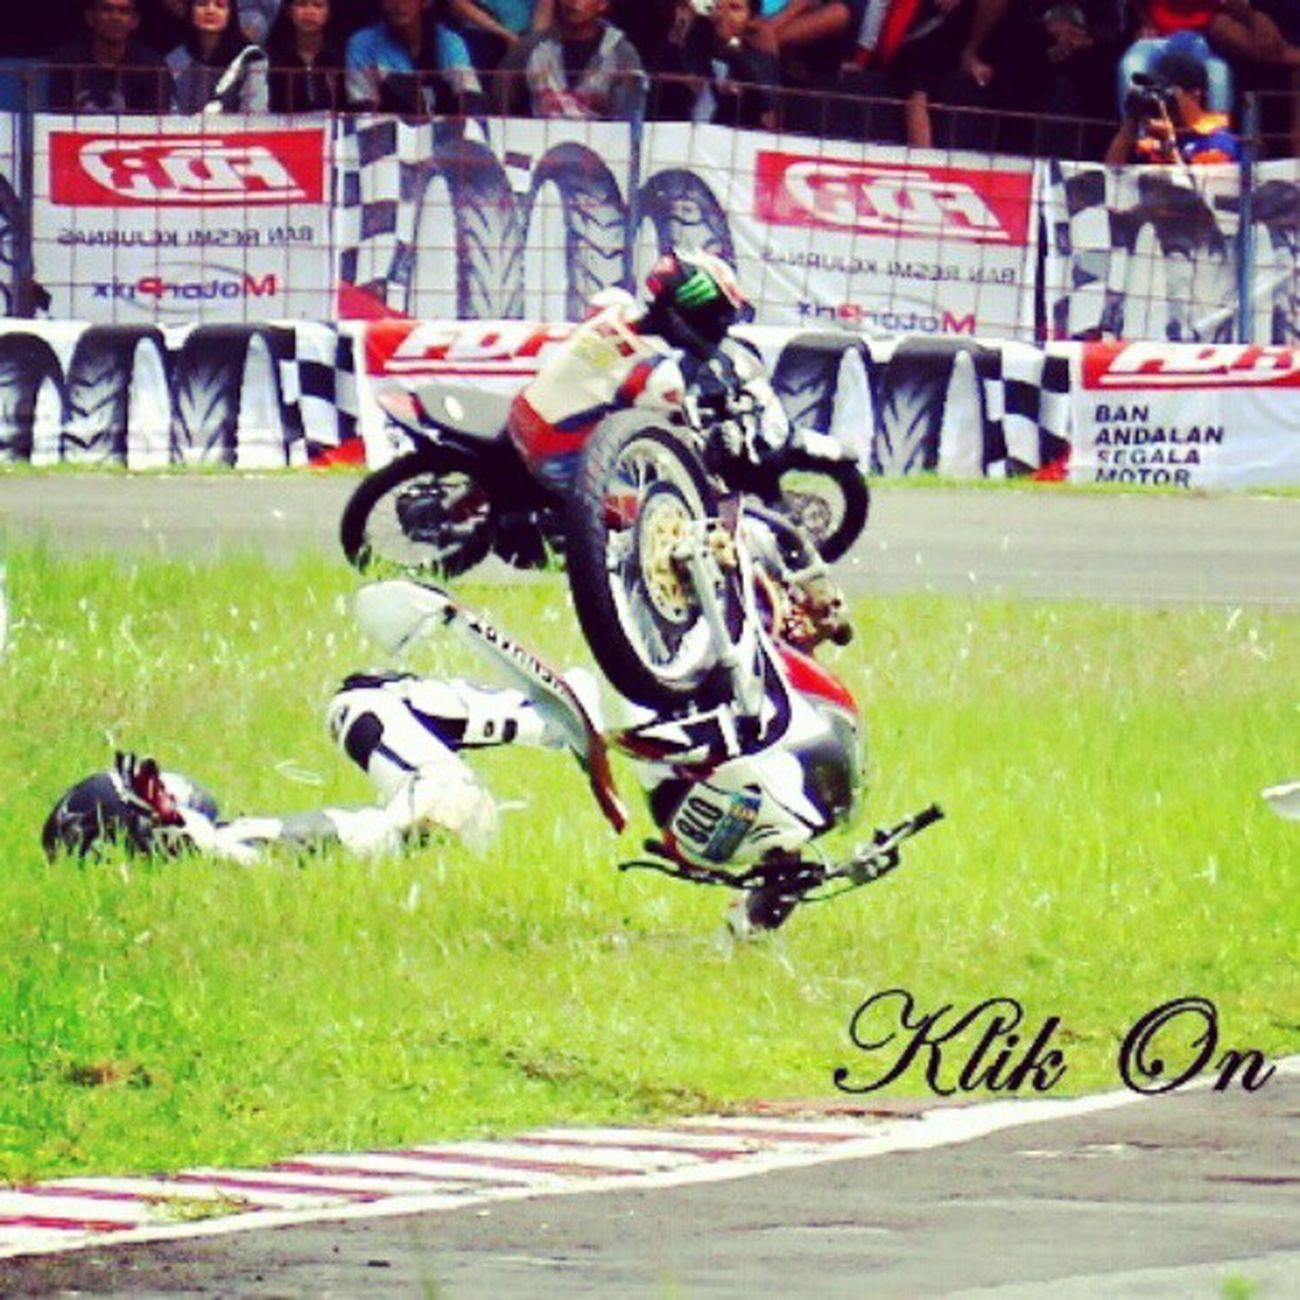 crash in indoprix Crash Klikon Instagram Canon roadrace instag